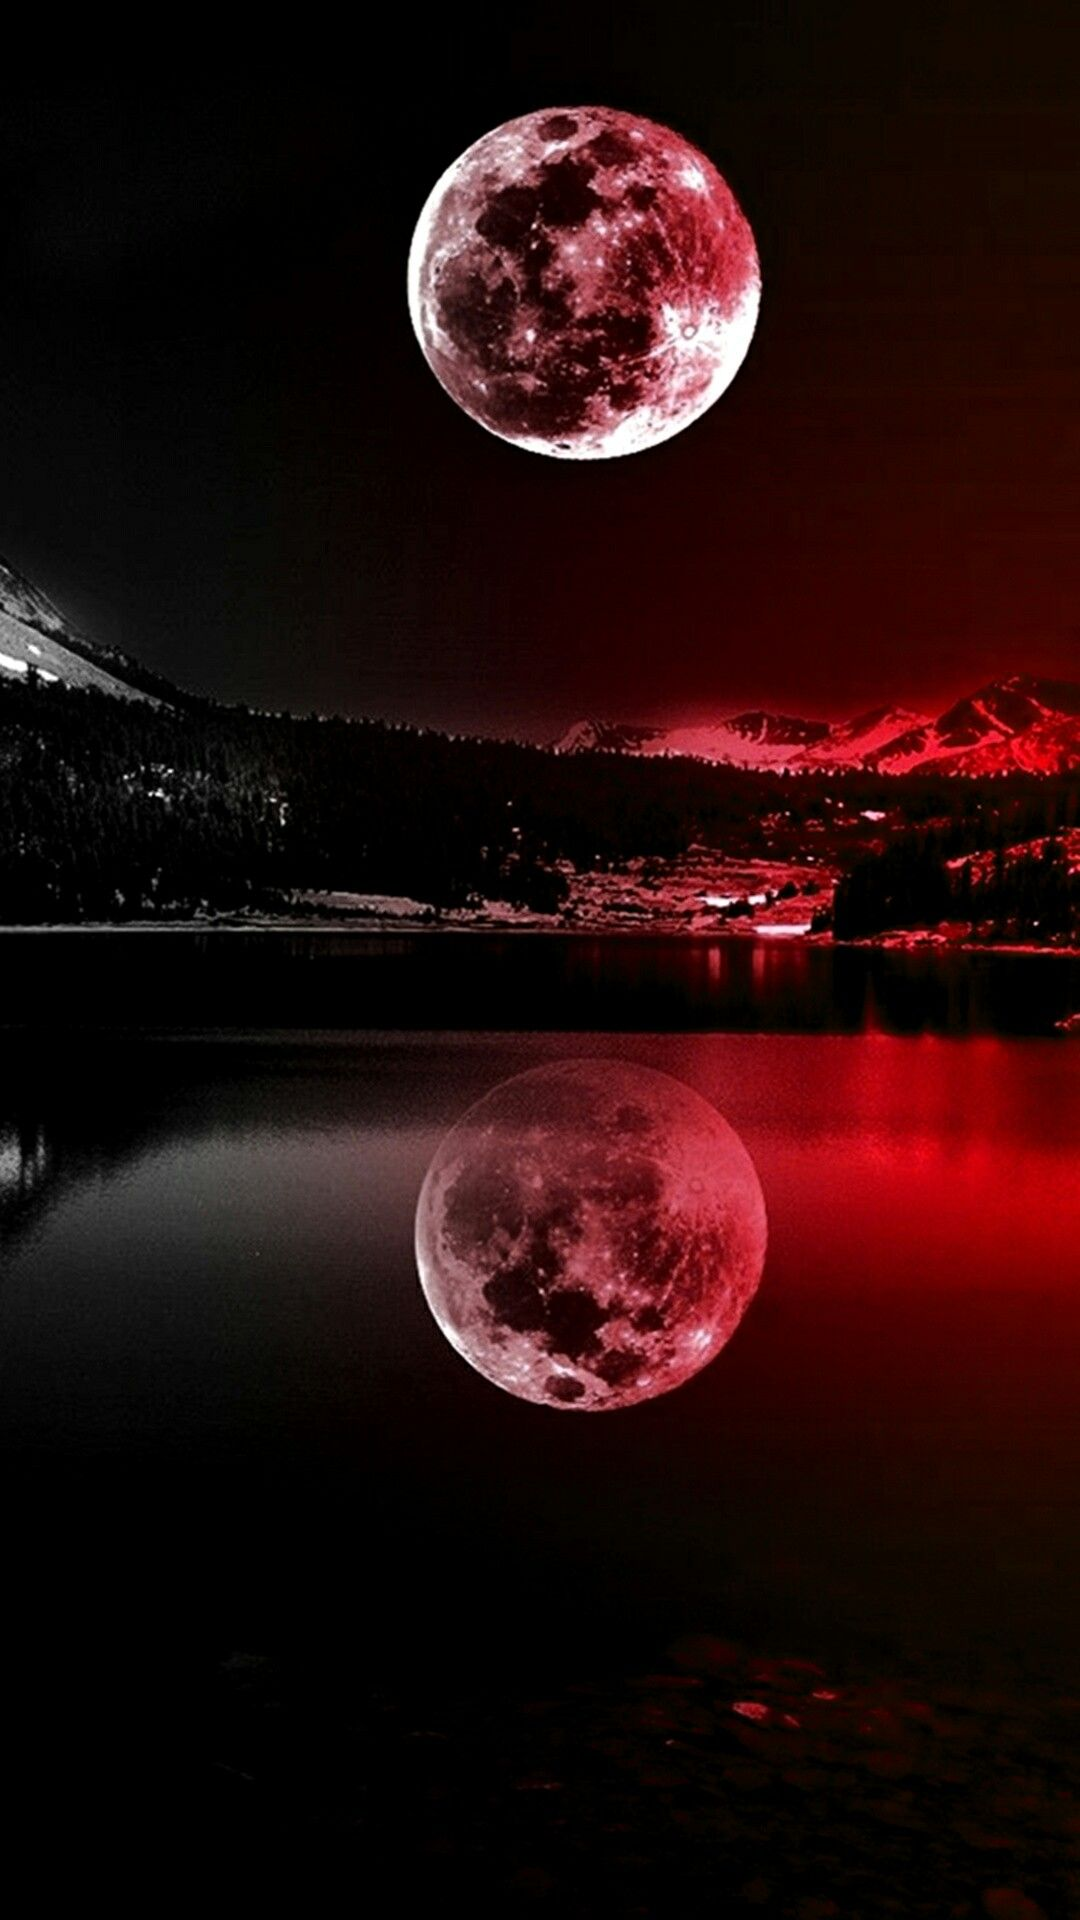 Pin by Bianca on Nature Full moon photography, Iphone